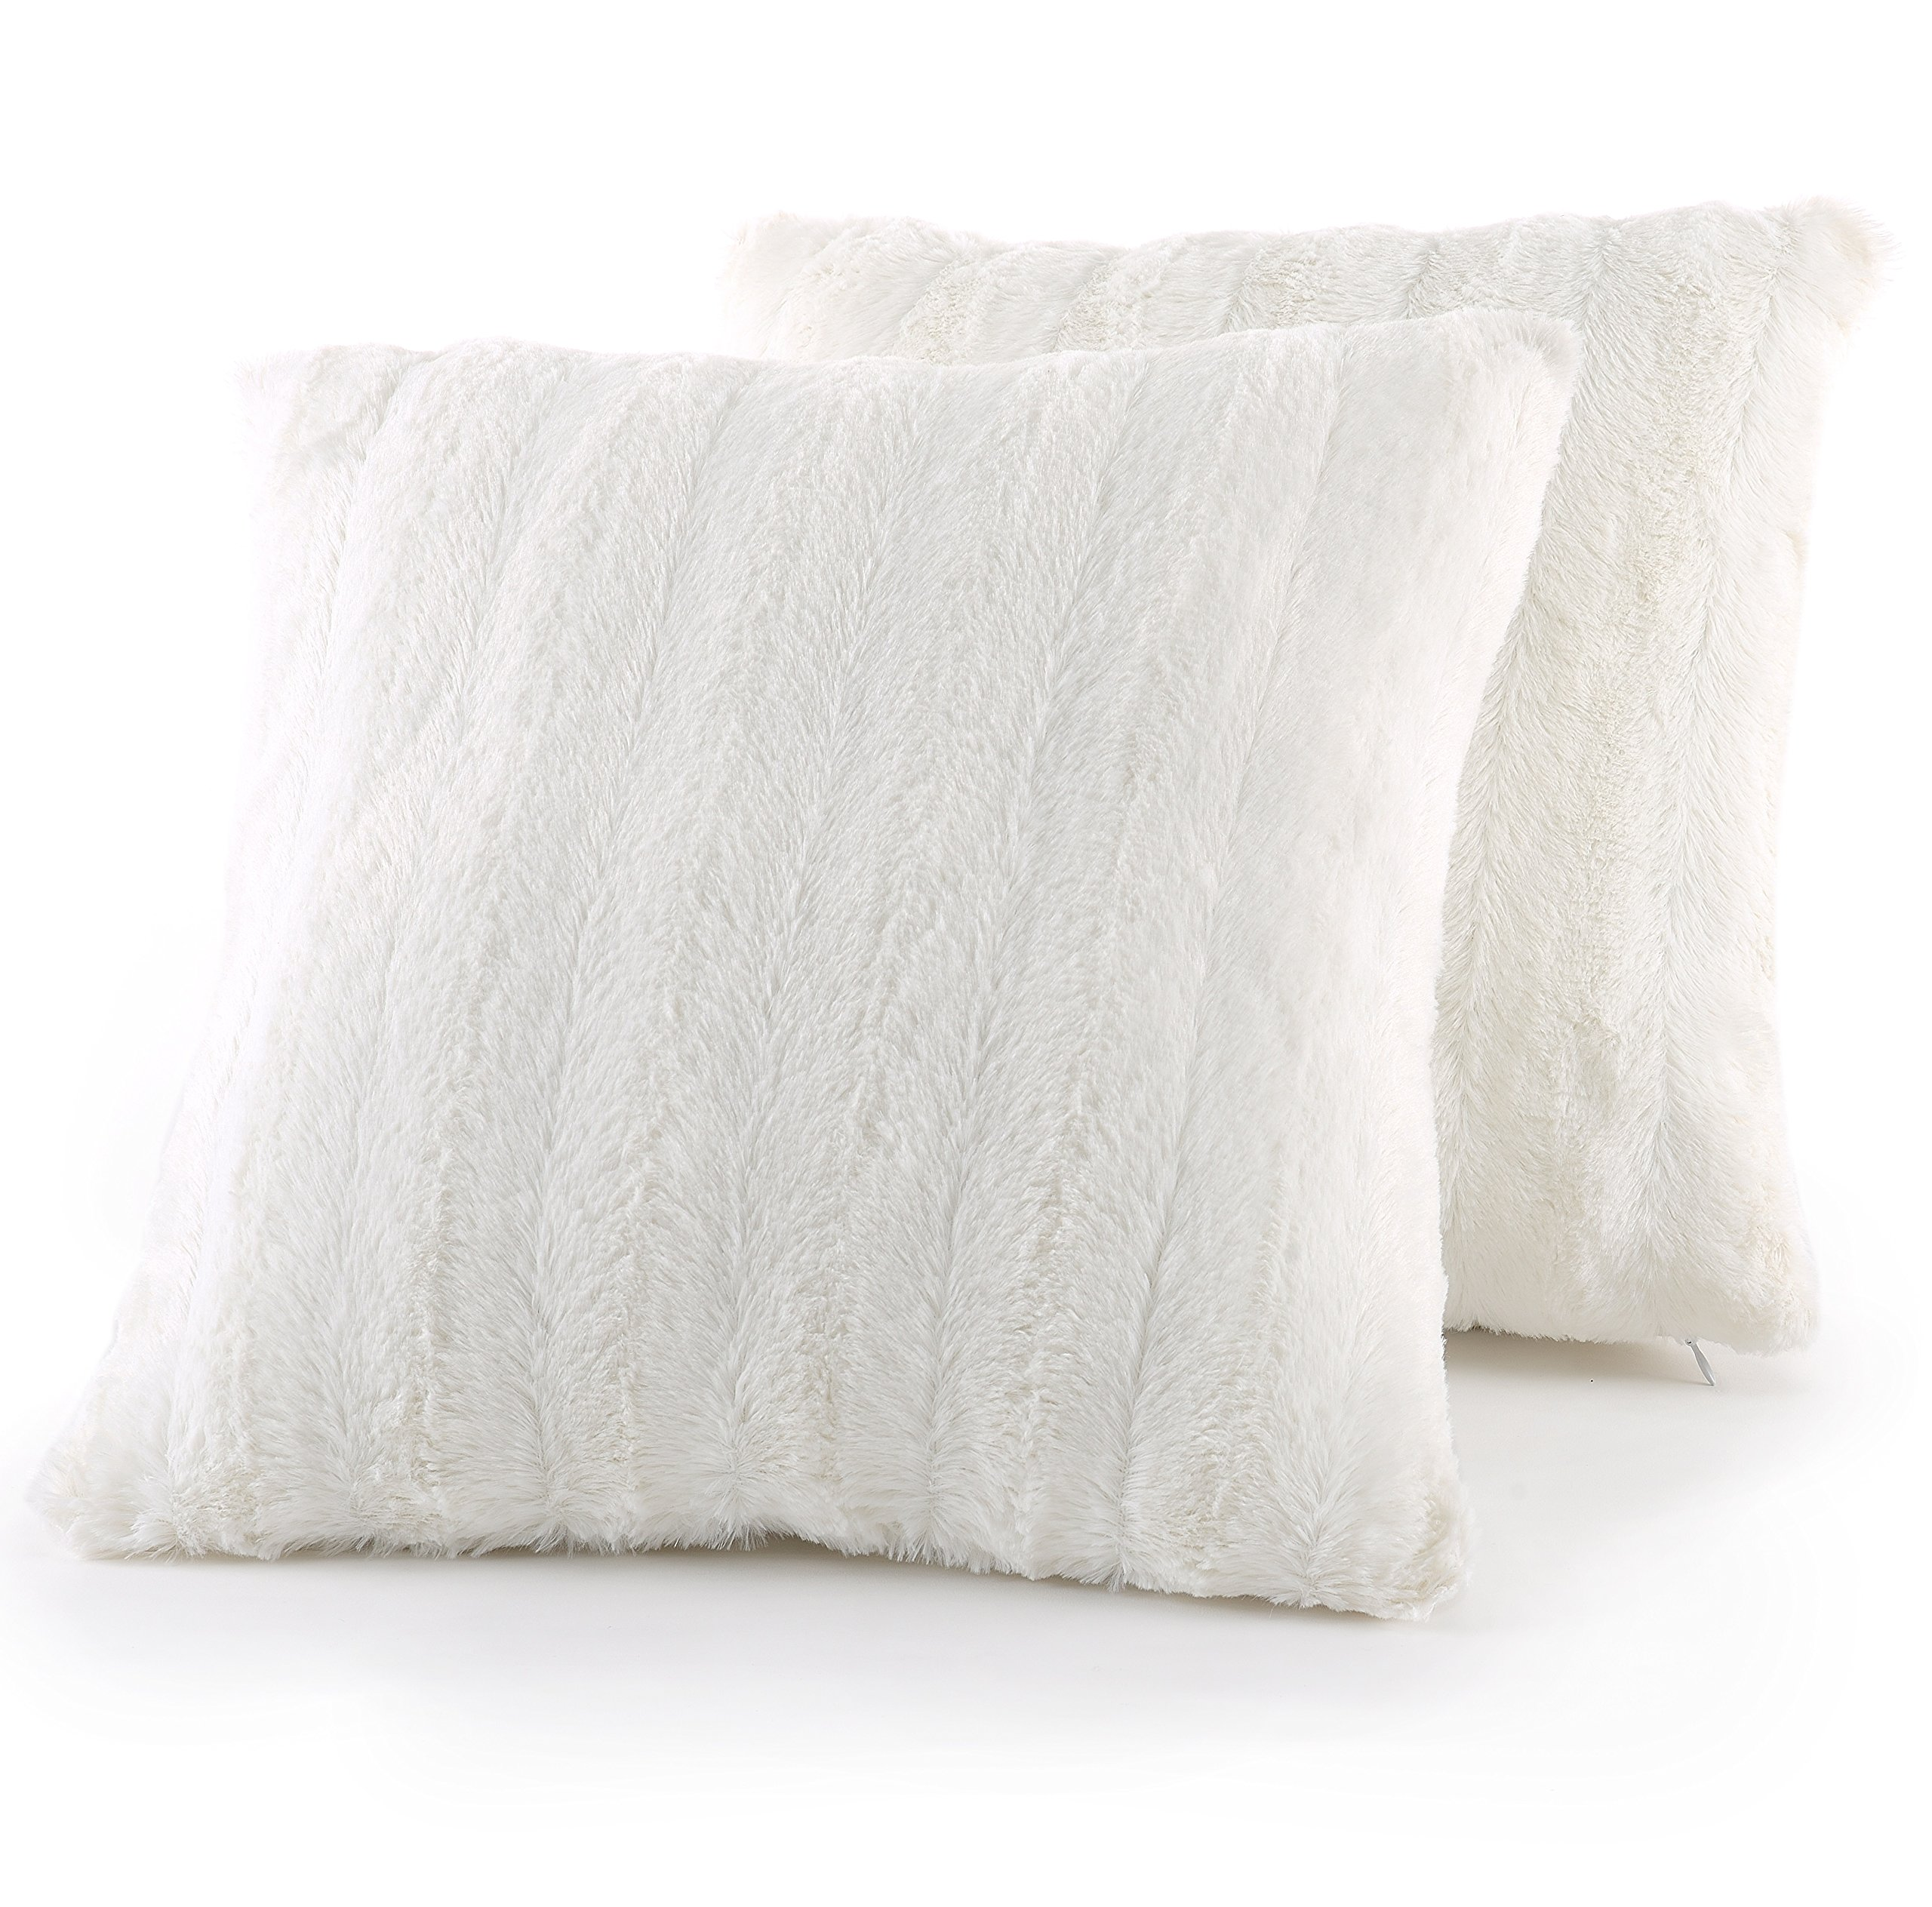 Cheer Collection Set of 2 Decorative Throw Pillows - Reversible Faux Fur to Microplush Accent Pillows by 18'' x 18'' - White